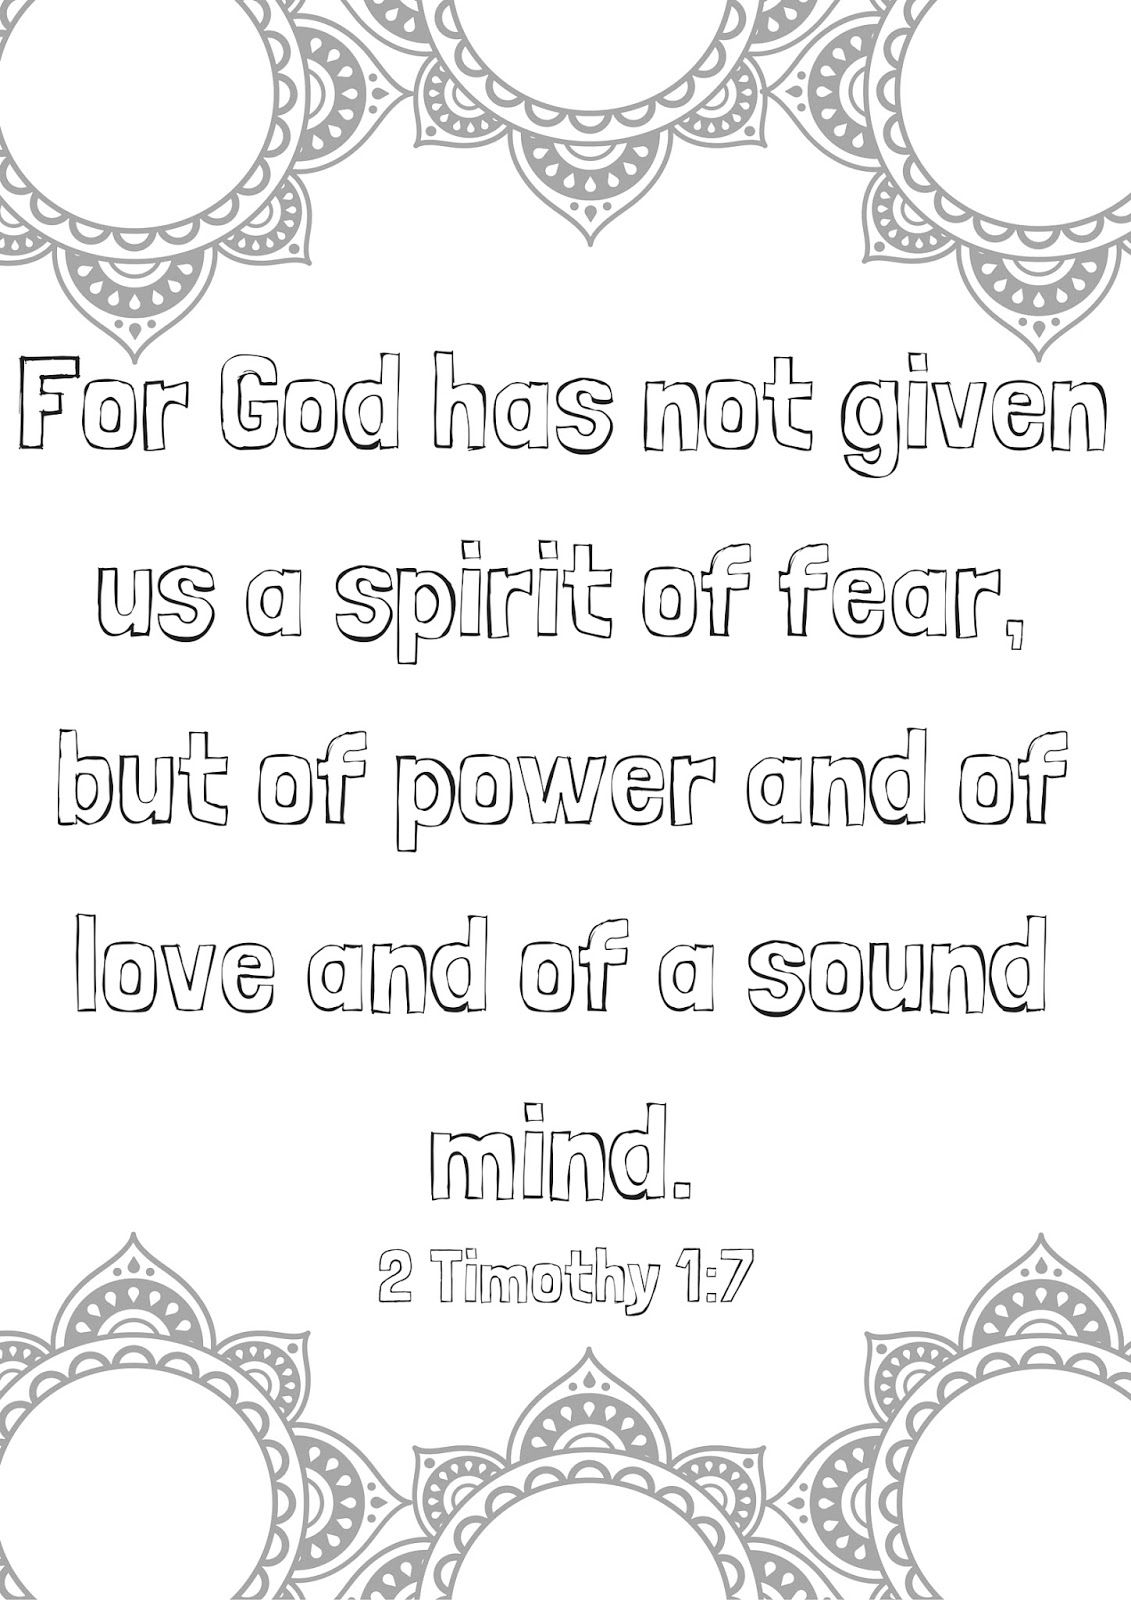 Feel Free To Print As A Coloring Page Go Here To Print Bible Verse Coloring Page 2 Timothy 1 7 Bible Verse Coloring